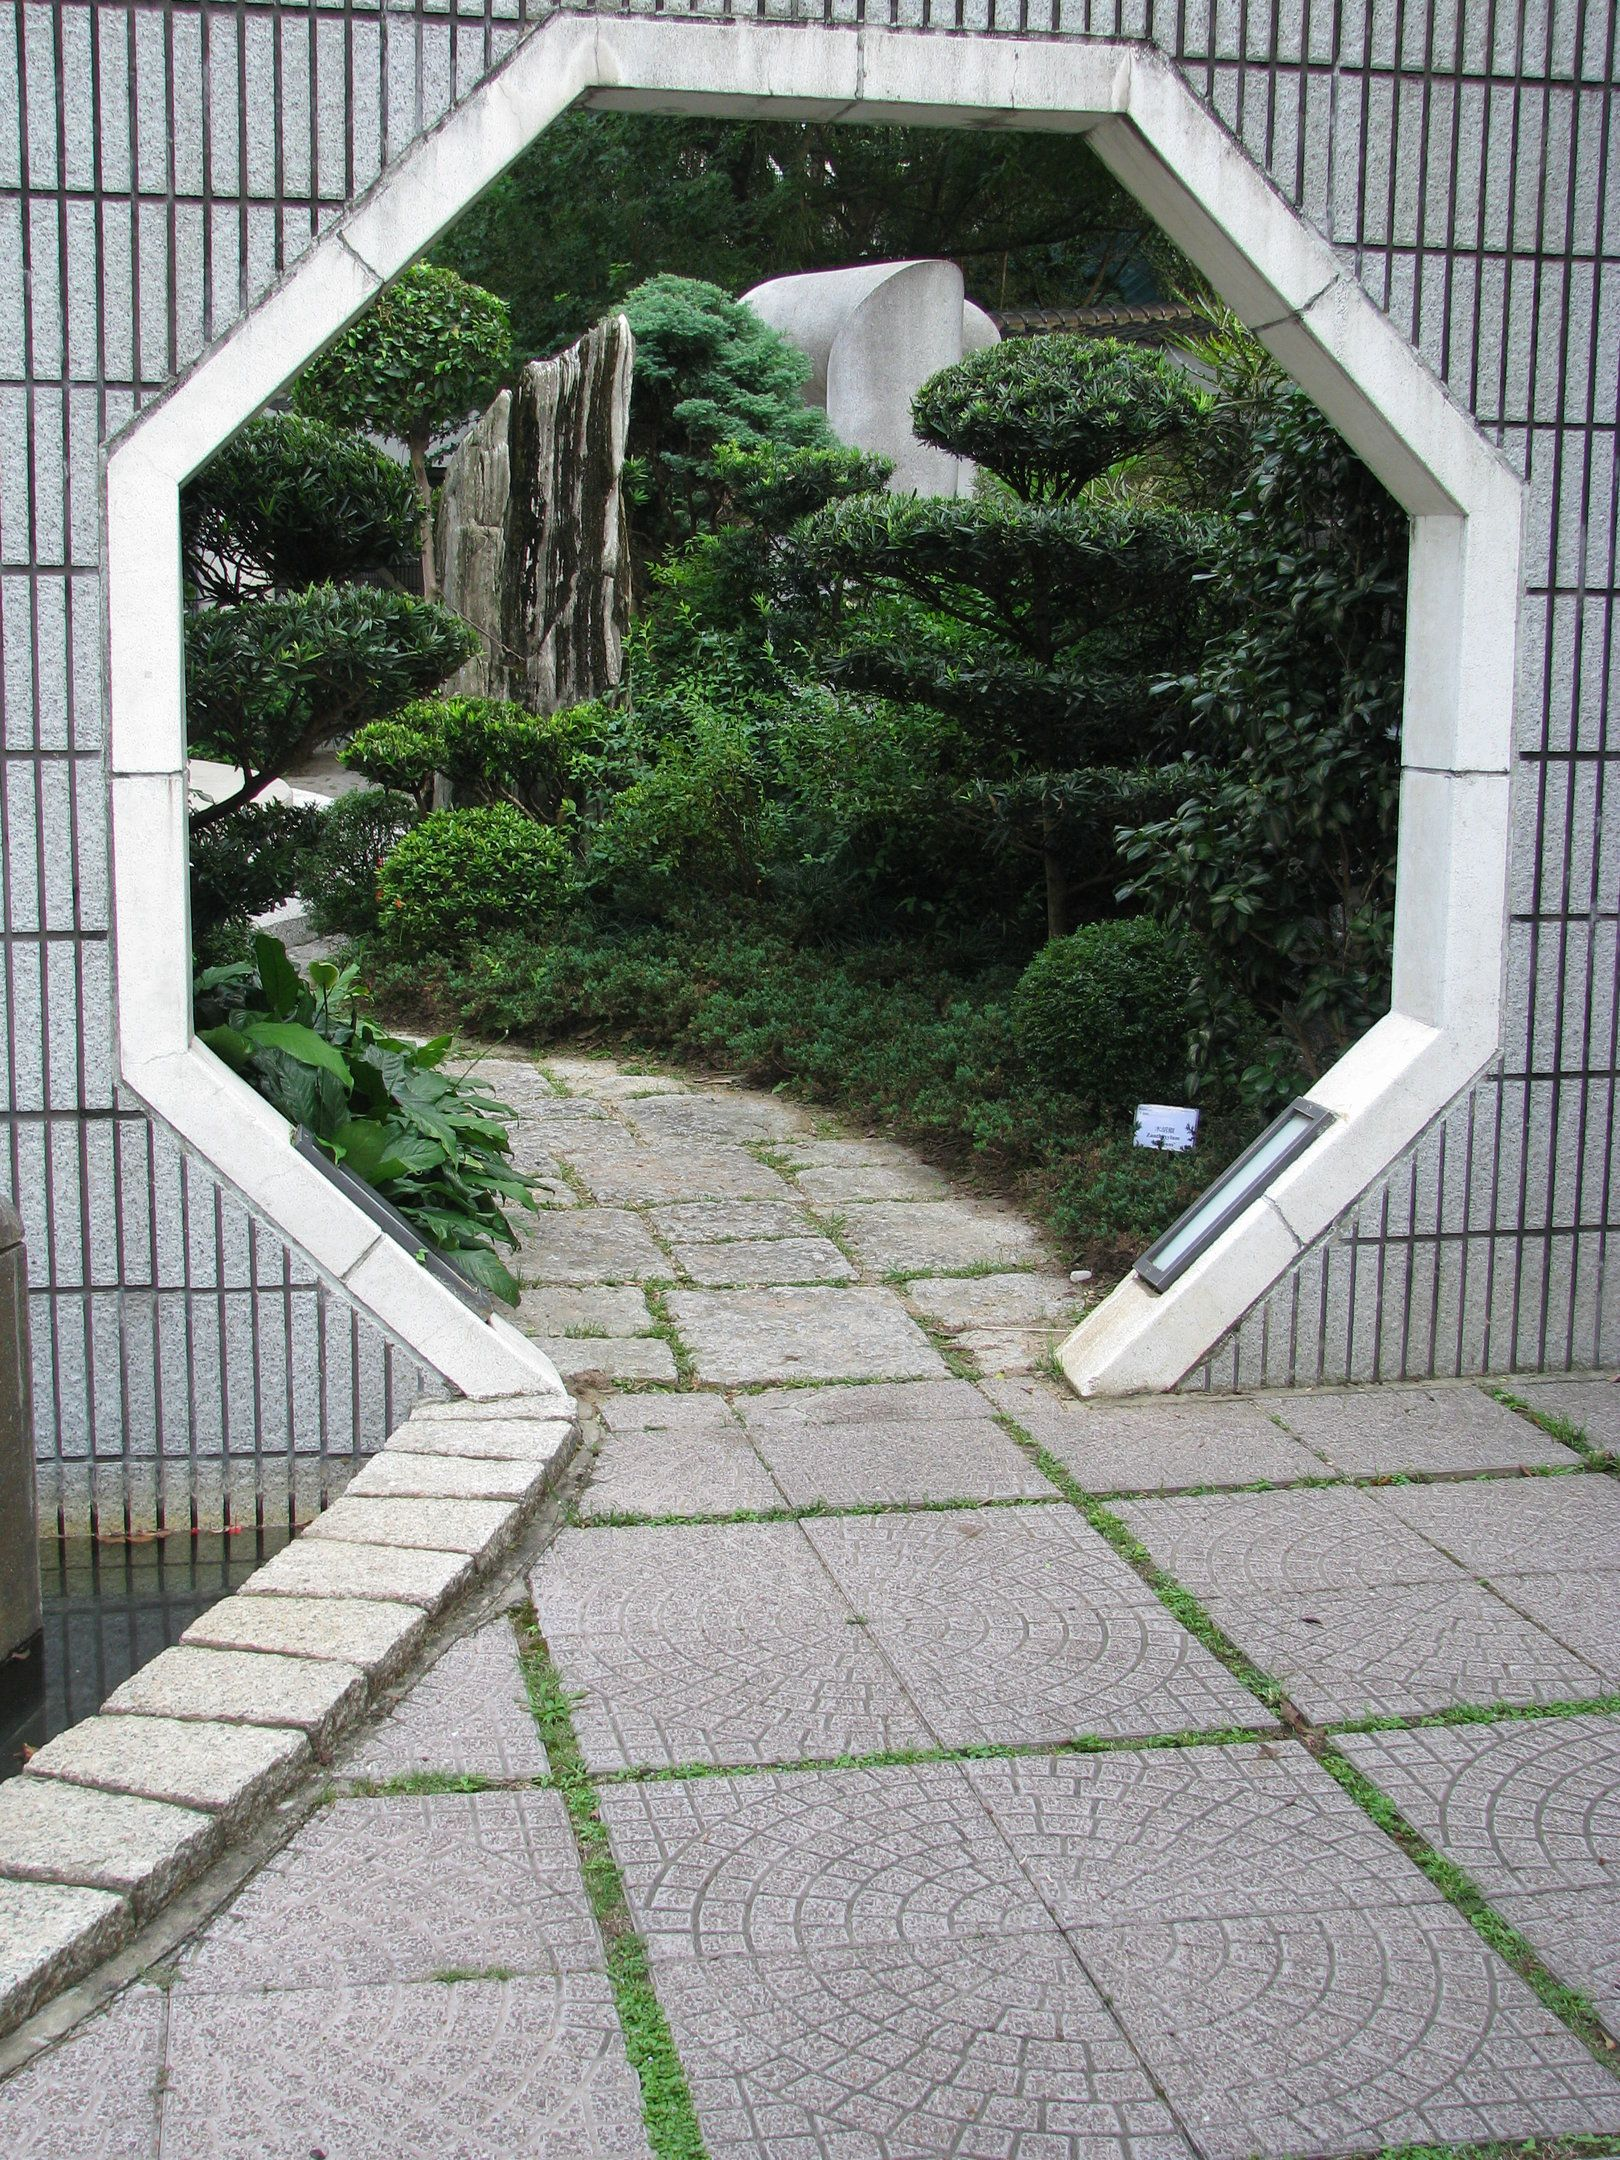 Maximize Your Garden With This Helpful Information   Chinese garden on japanese zen arch, japanese wedding arch, japanese garden tower, japanese garden basin, japanese garden will, japanese edging, japanese wood arch, japanese garden river, japanese garden post, japanese garden trail, japanese garden bird, japanese botanical garden birmingham, japanese garden bridge san francisco, japanese garden gates and arches, japanese garden forest, japanese torii arch, japanese garden moon gate, japanese garden aerial view, japanese architecture arch, japanese garden architecture,